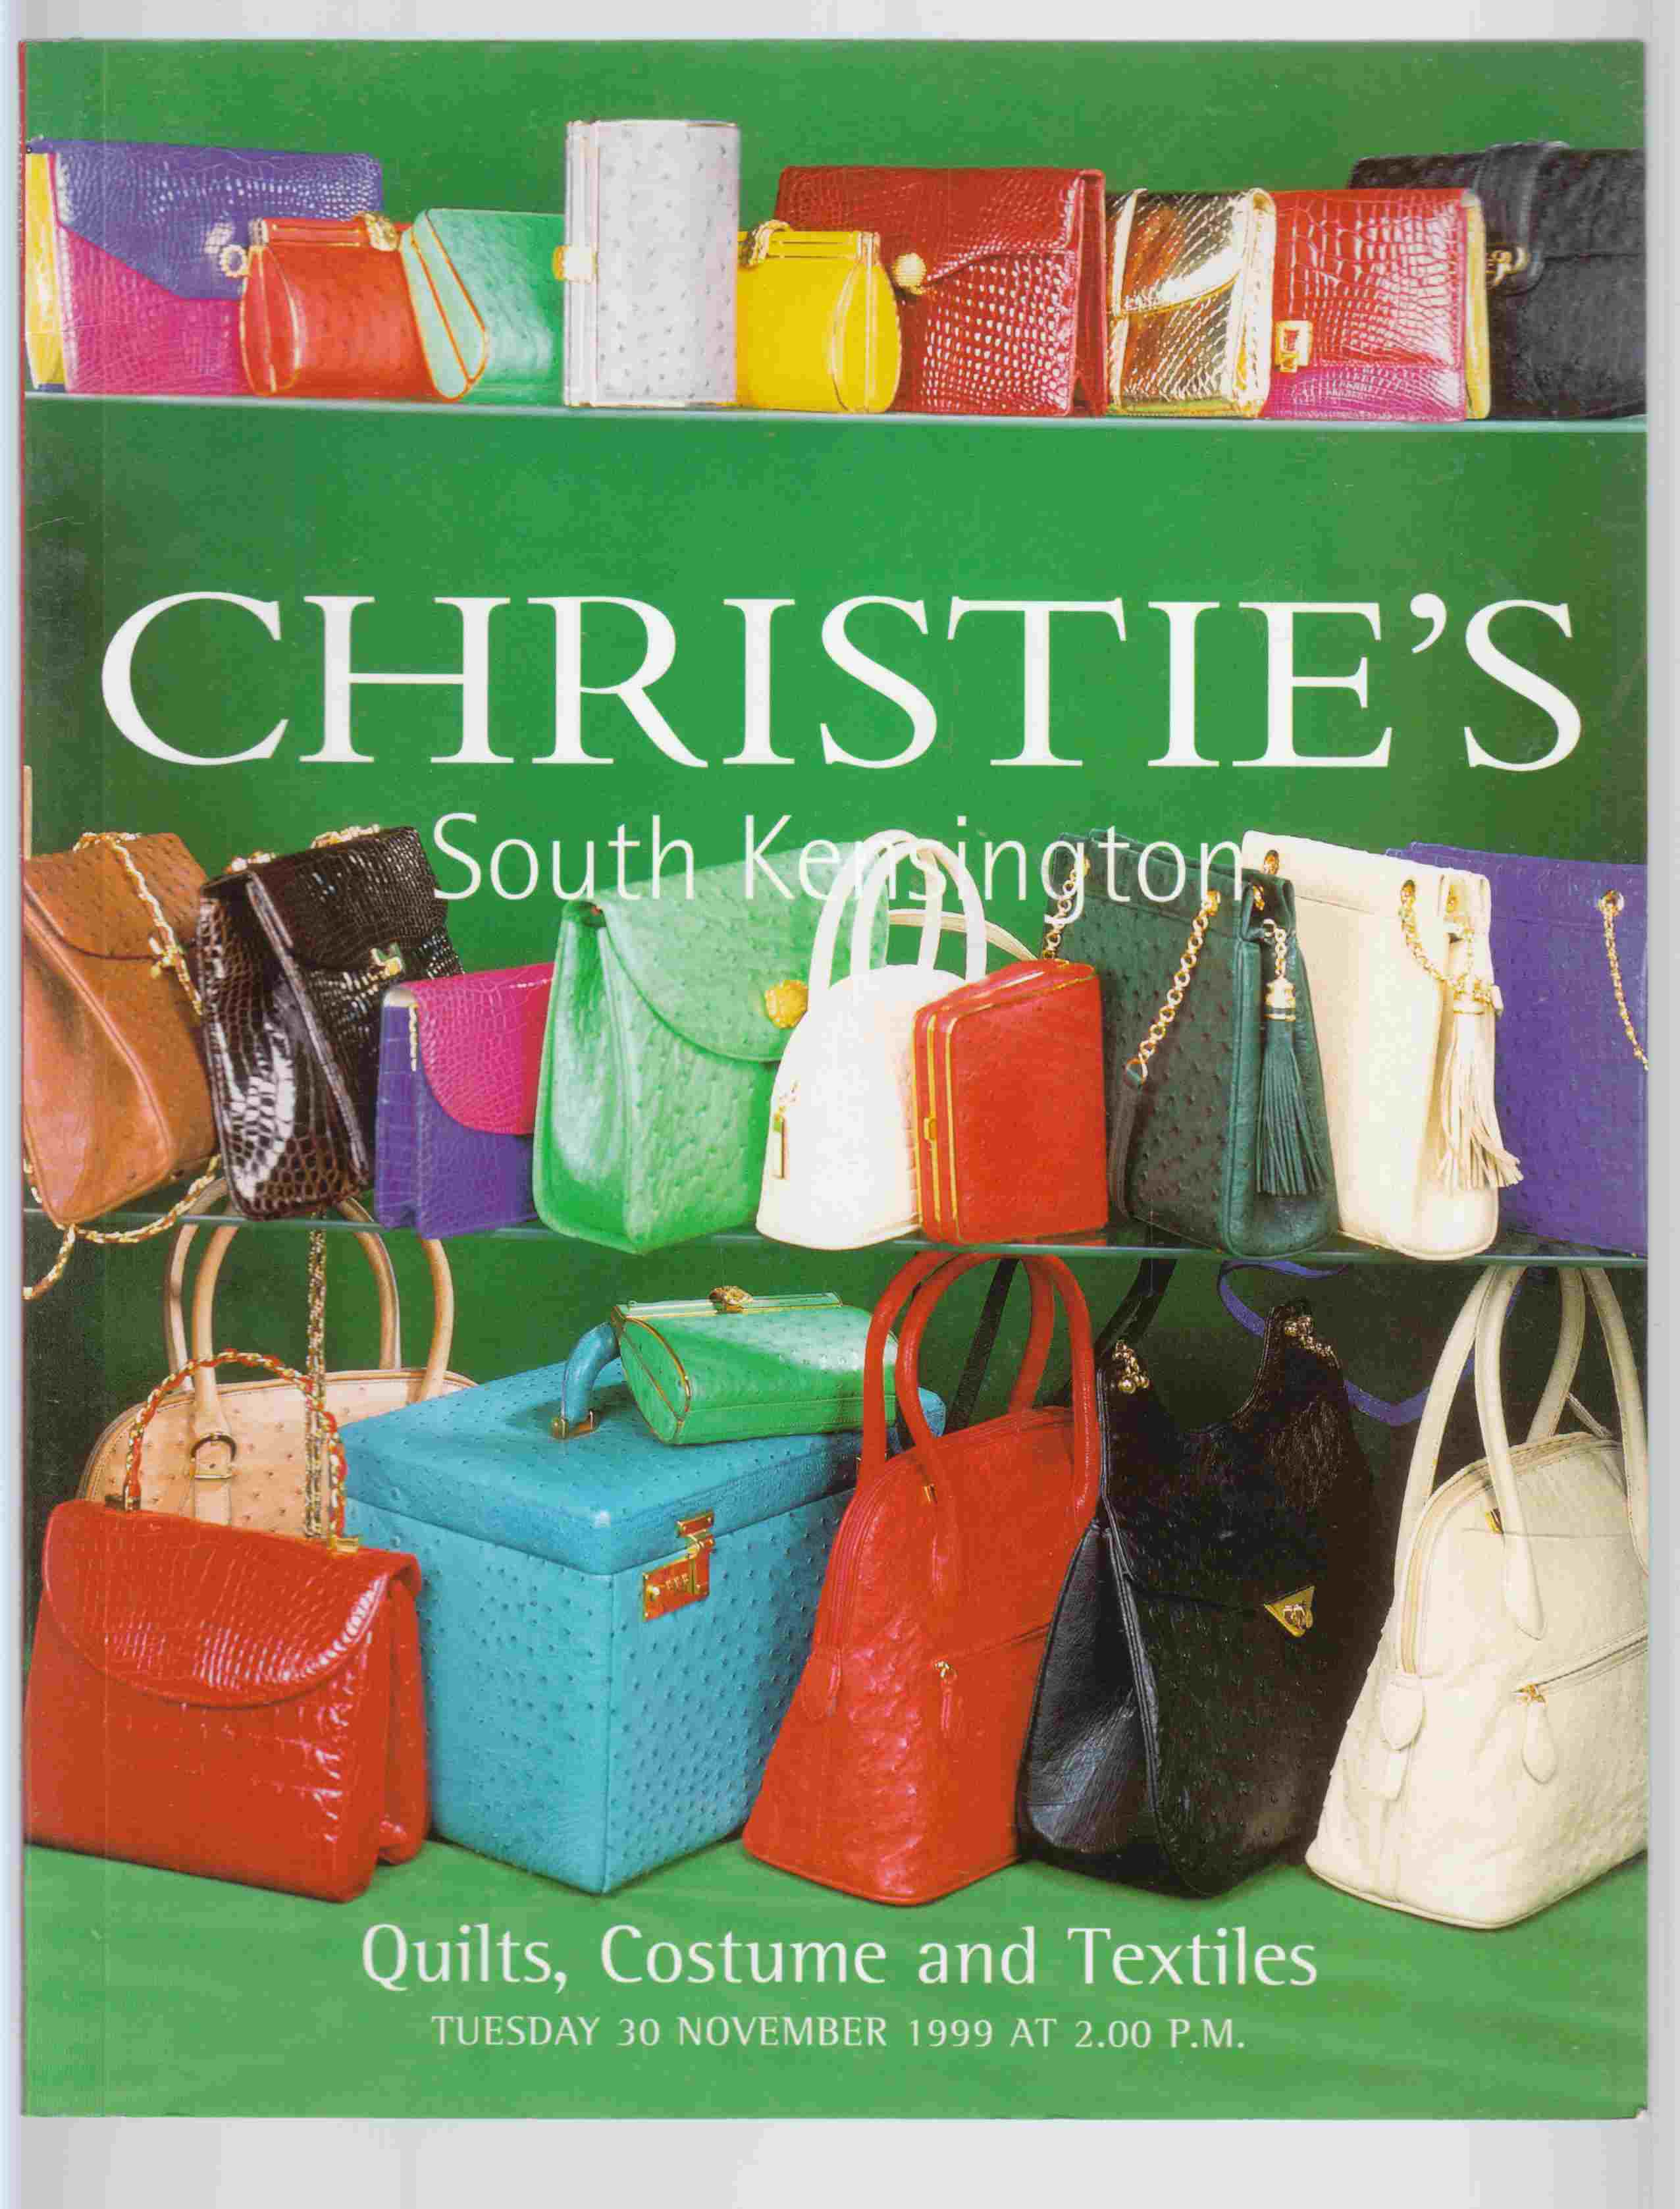 Image for Christie's South Kensington Quilts, Costume and Textiles Tuesday 30 November 1999